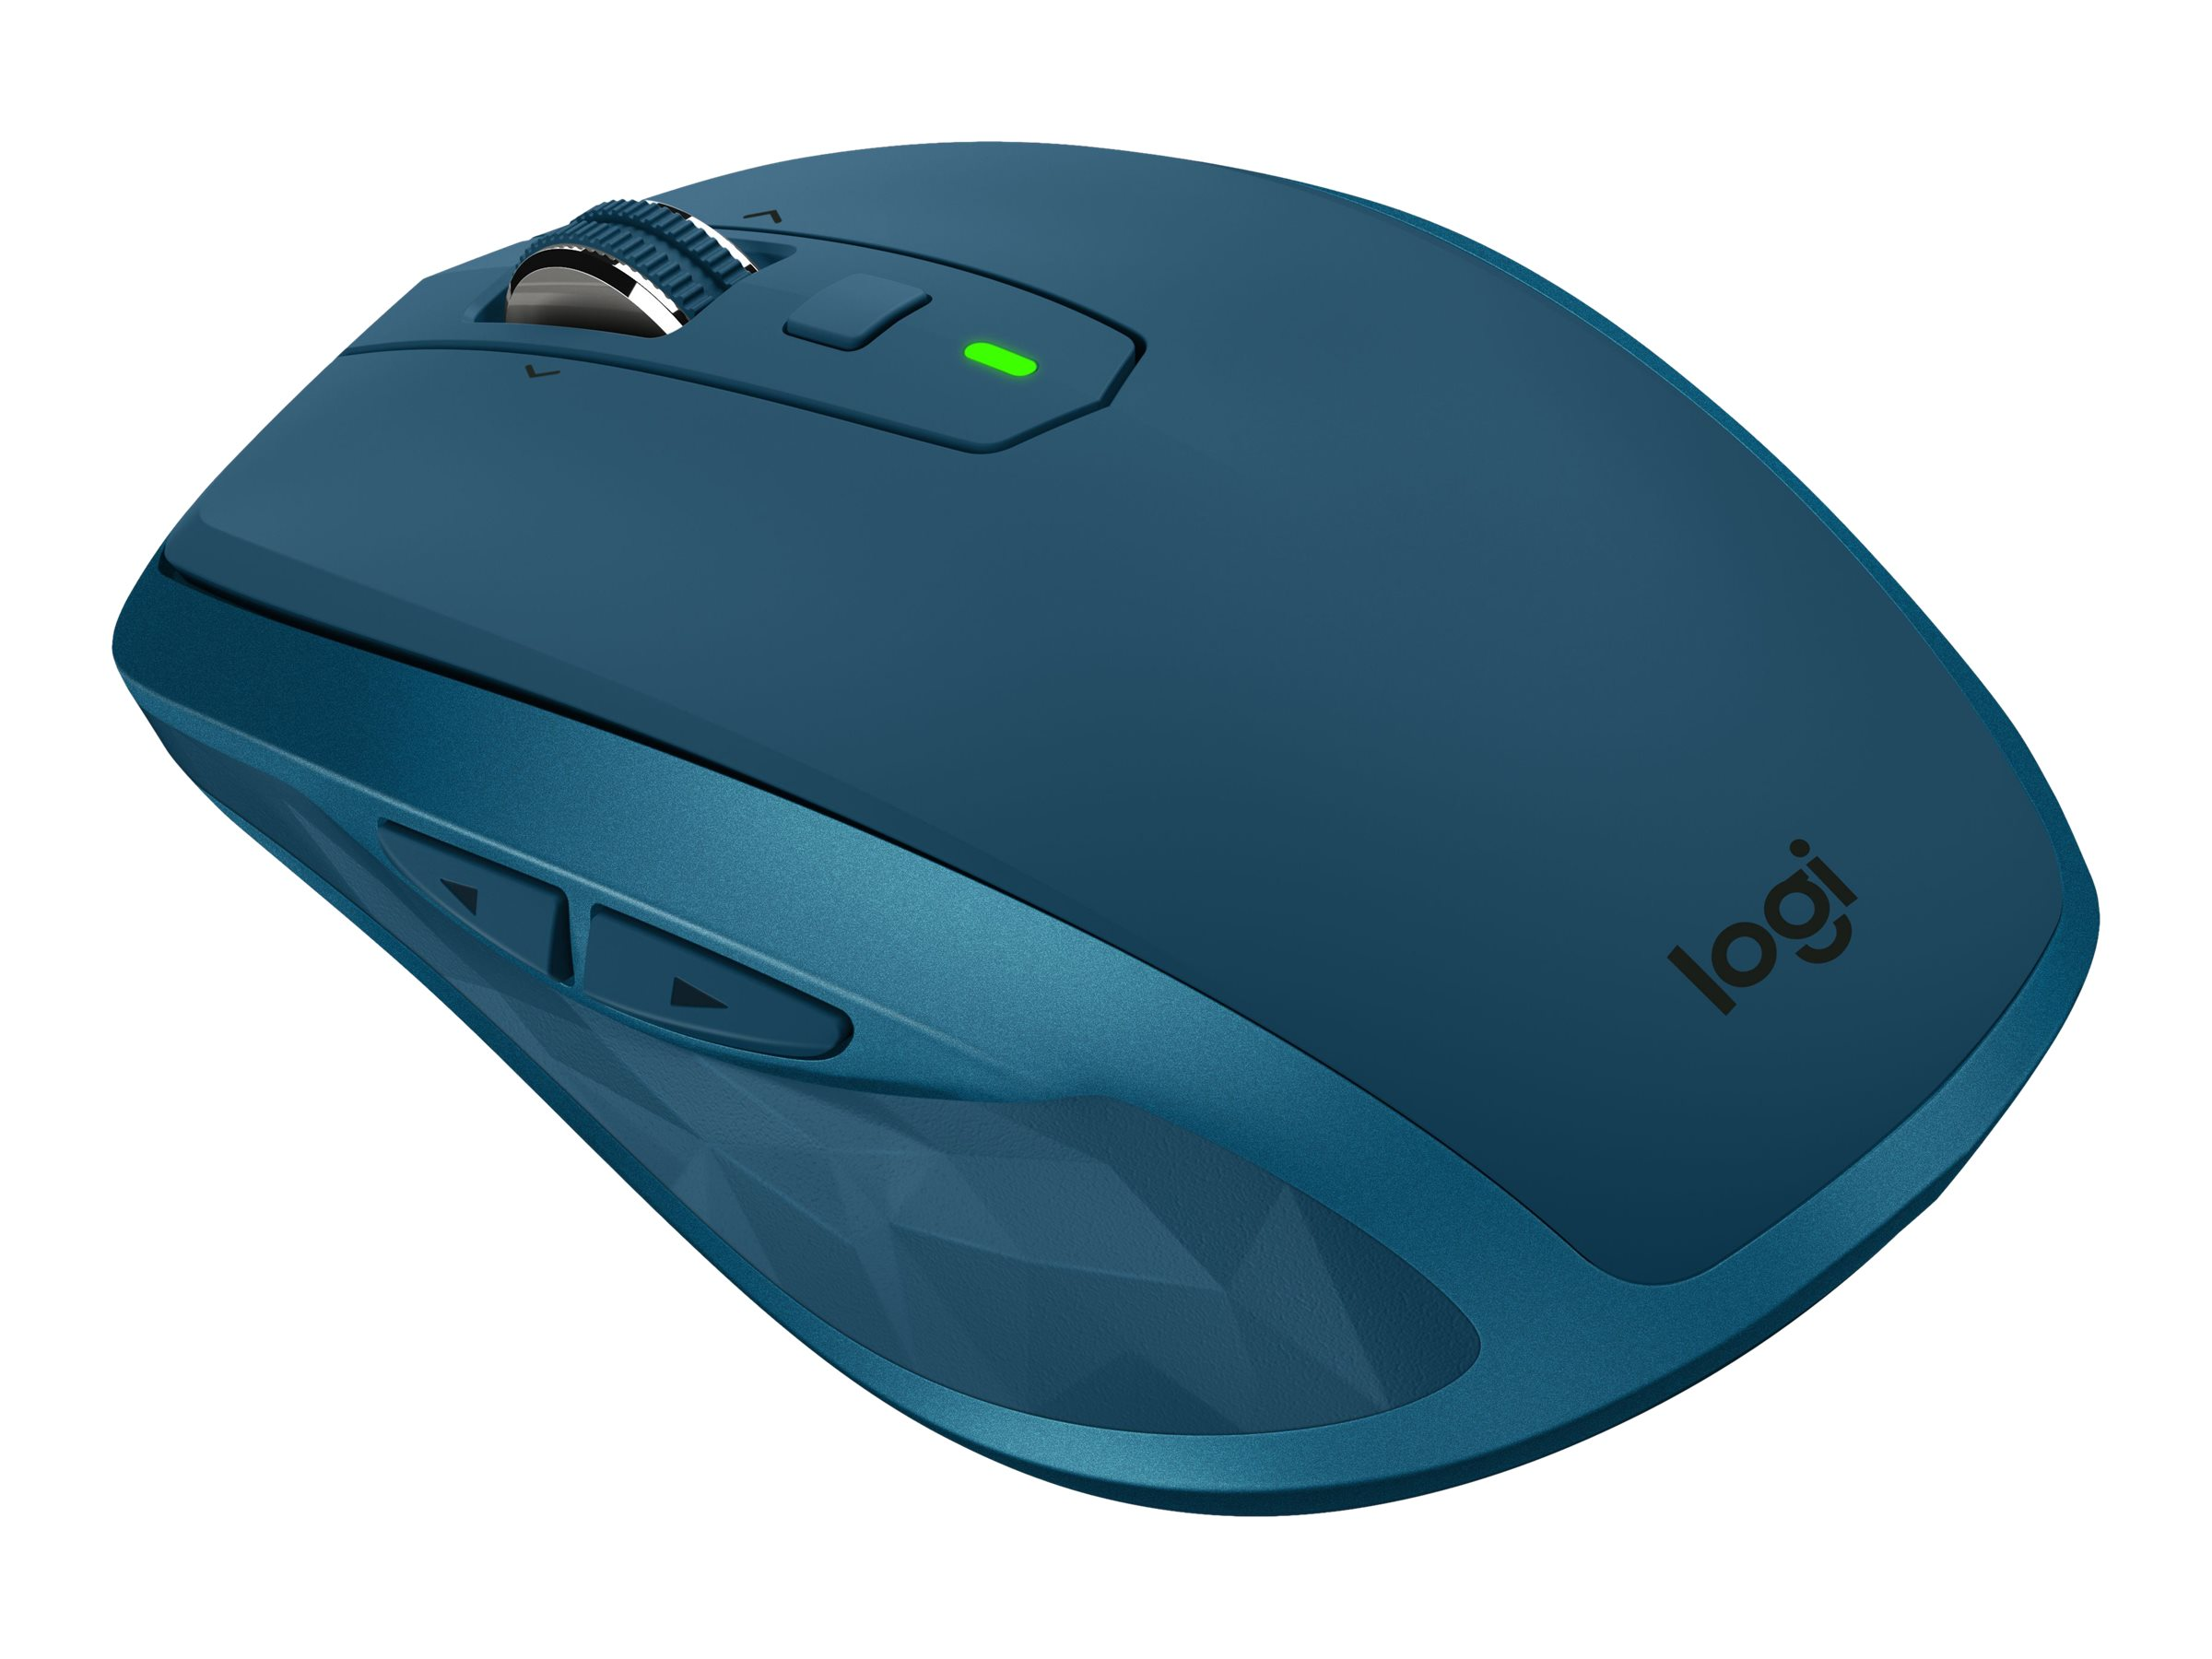 Image for Logitech Mx Anywhere 2S - Mouse - Bluetooth, 2.4 Ghz - Midnight Teal from Circuit City